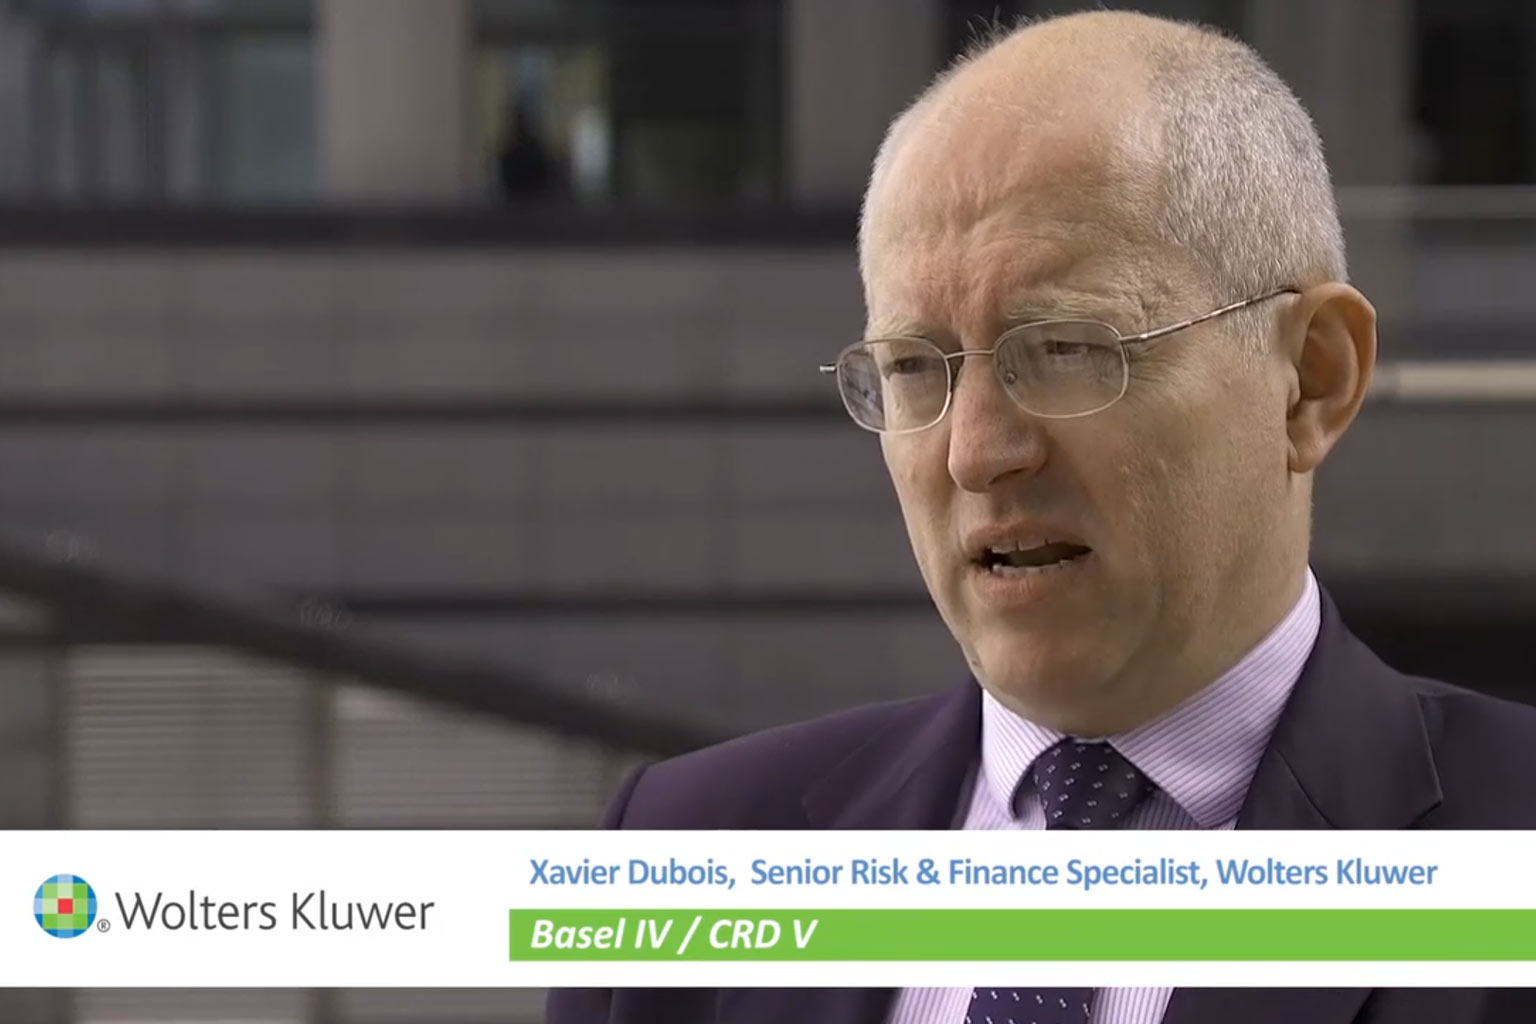 How can banks prepare for Basel IV and CRD V video